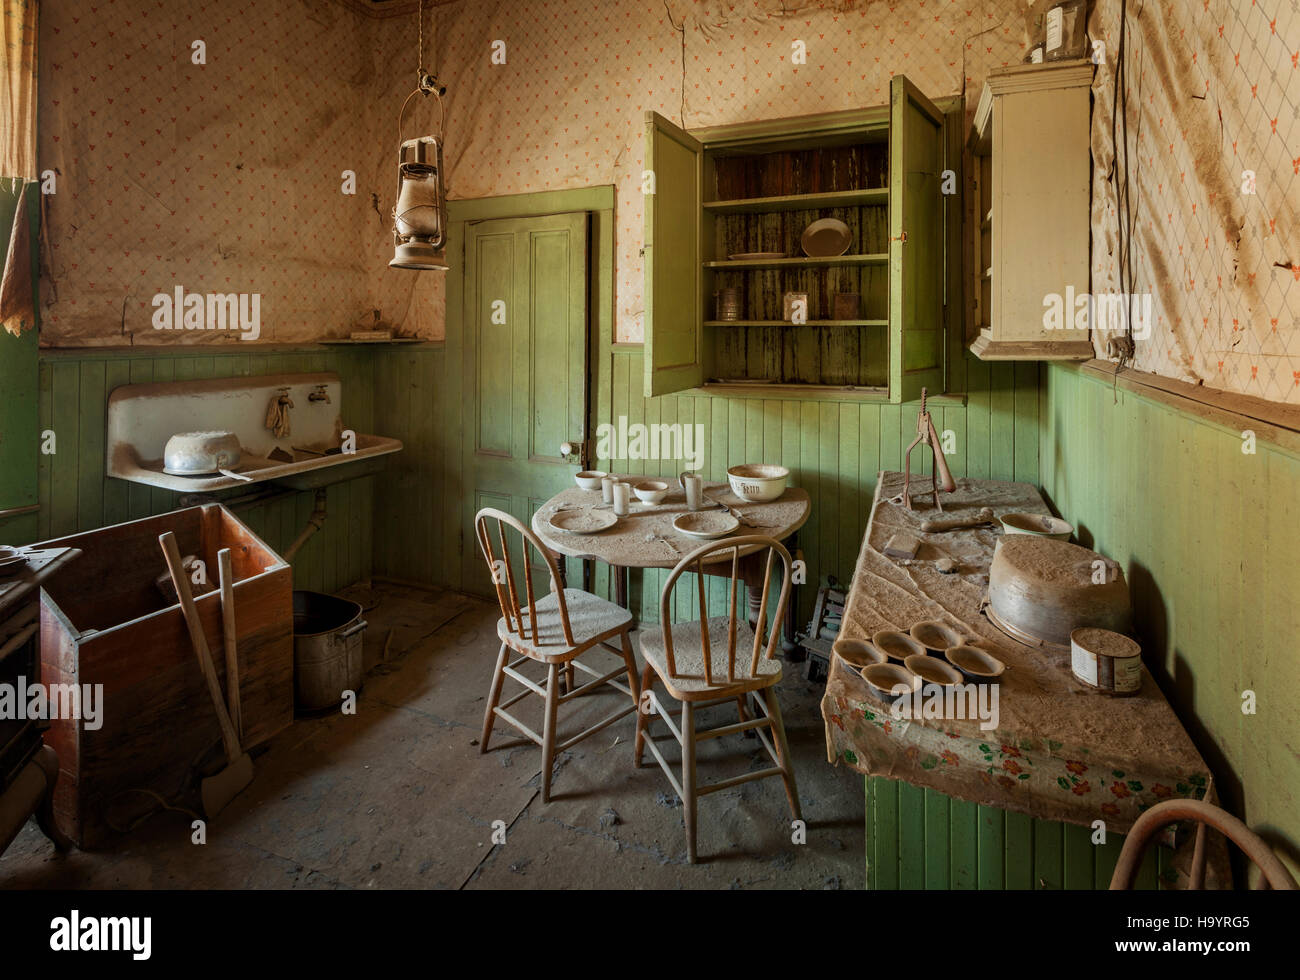 Tom Miller House Bodie Ghost Town.  a ghost town visitor attraction in California.  Bodie is maintained in a state - Stock Image